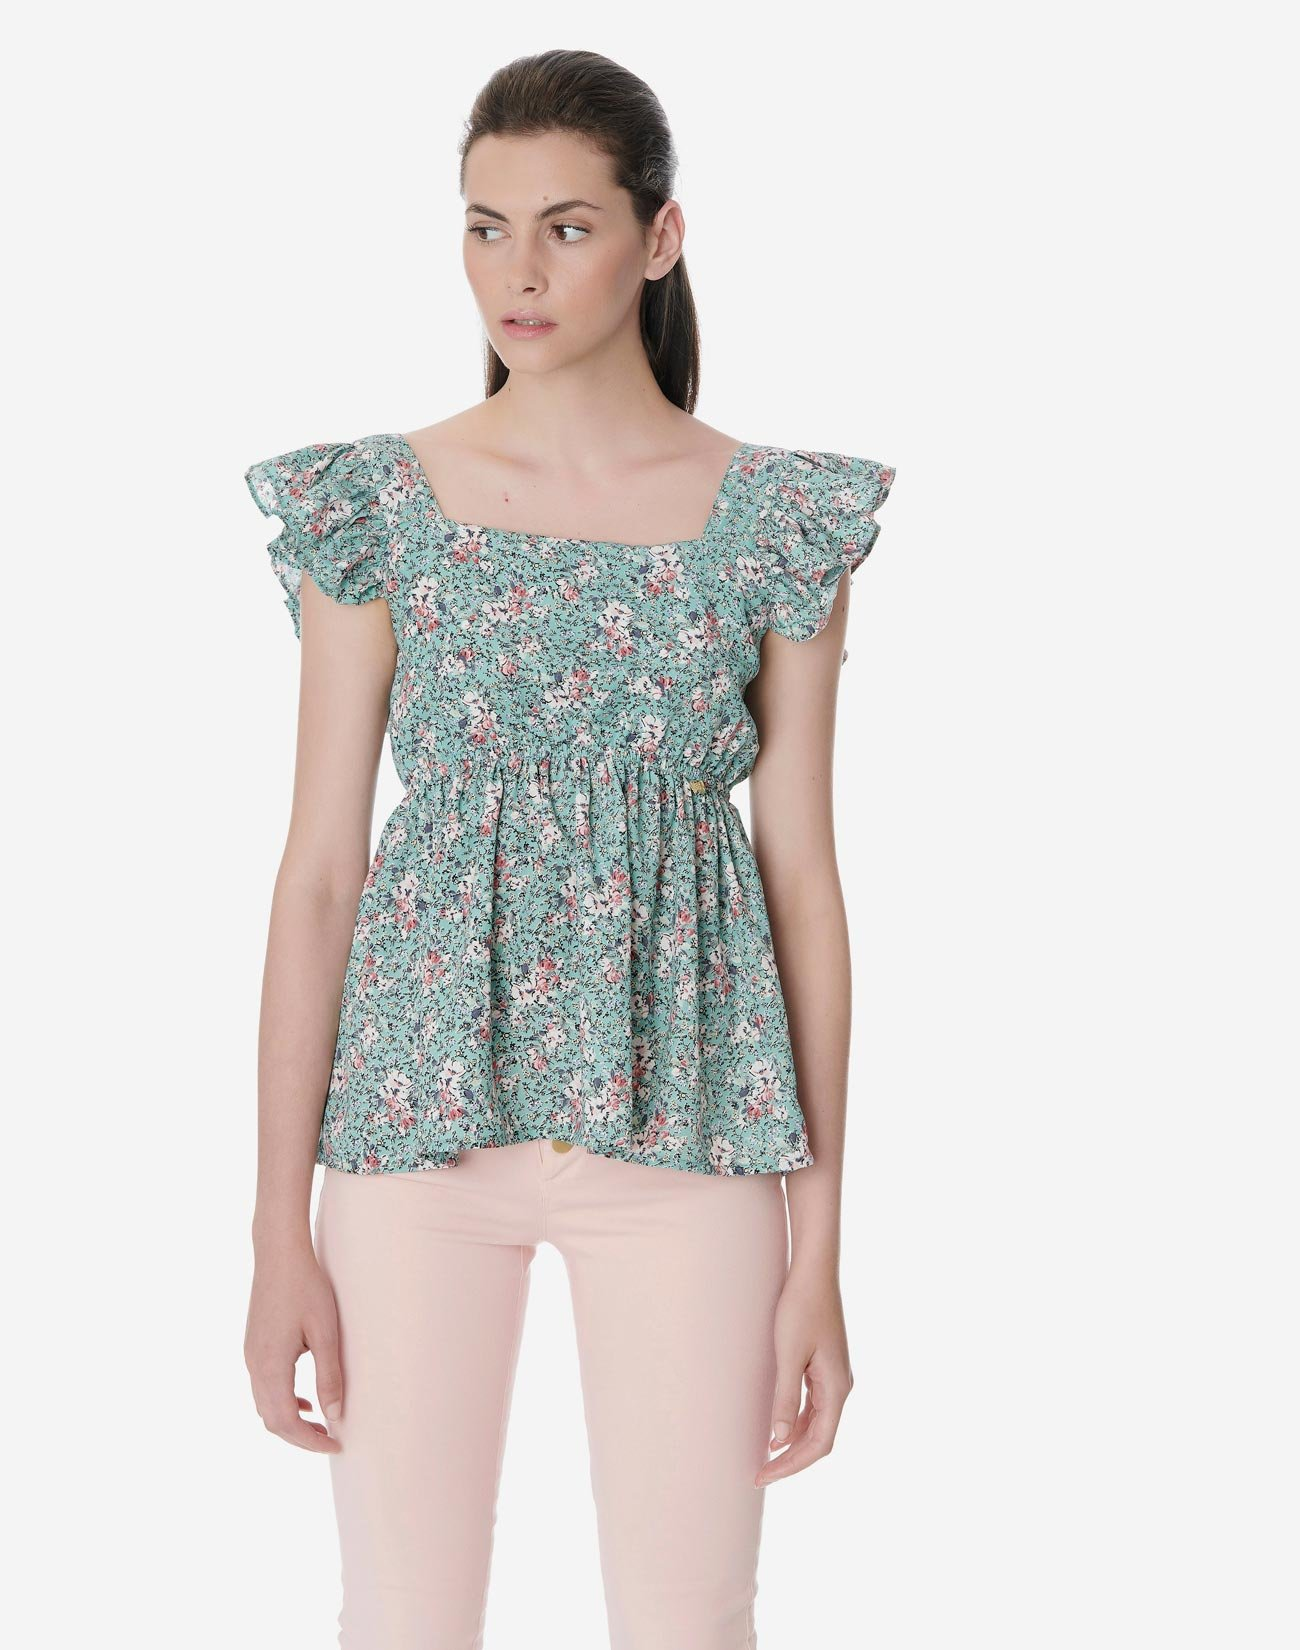 Floral top with bow